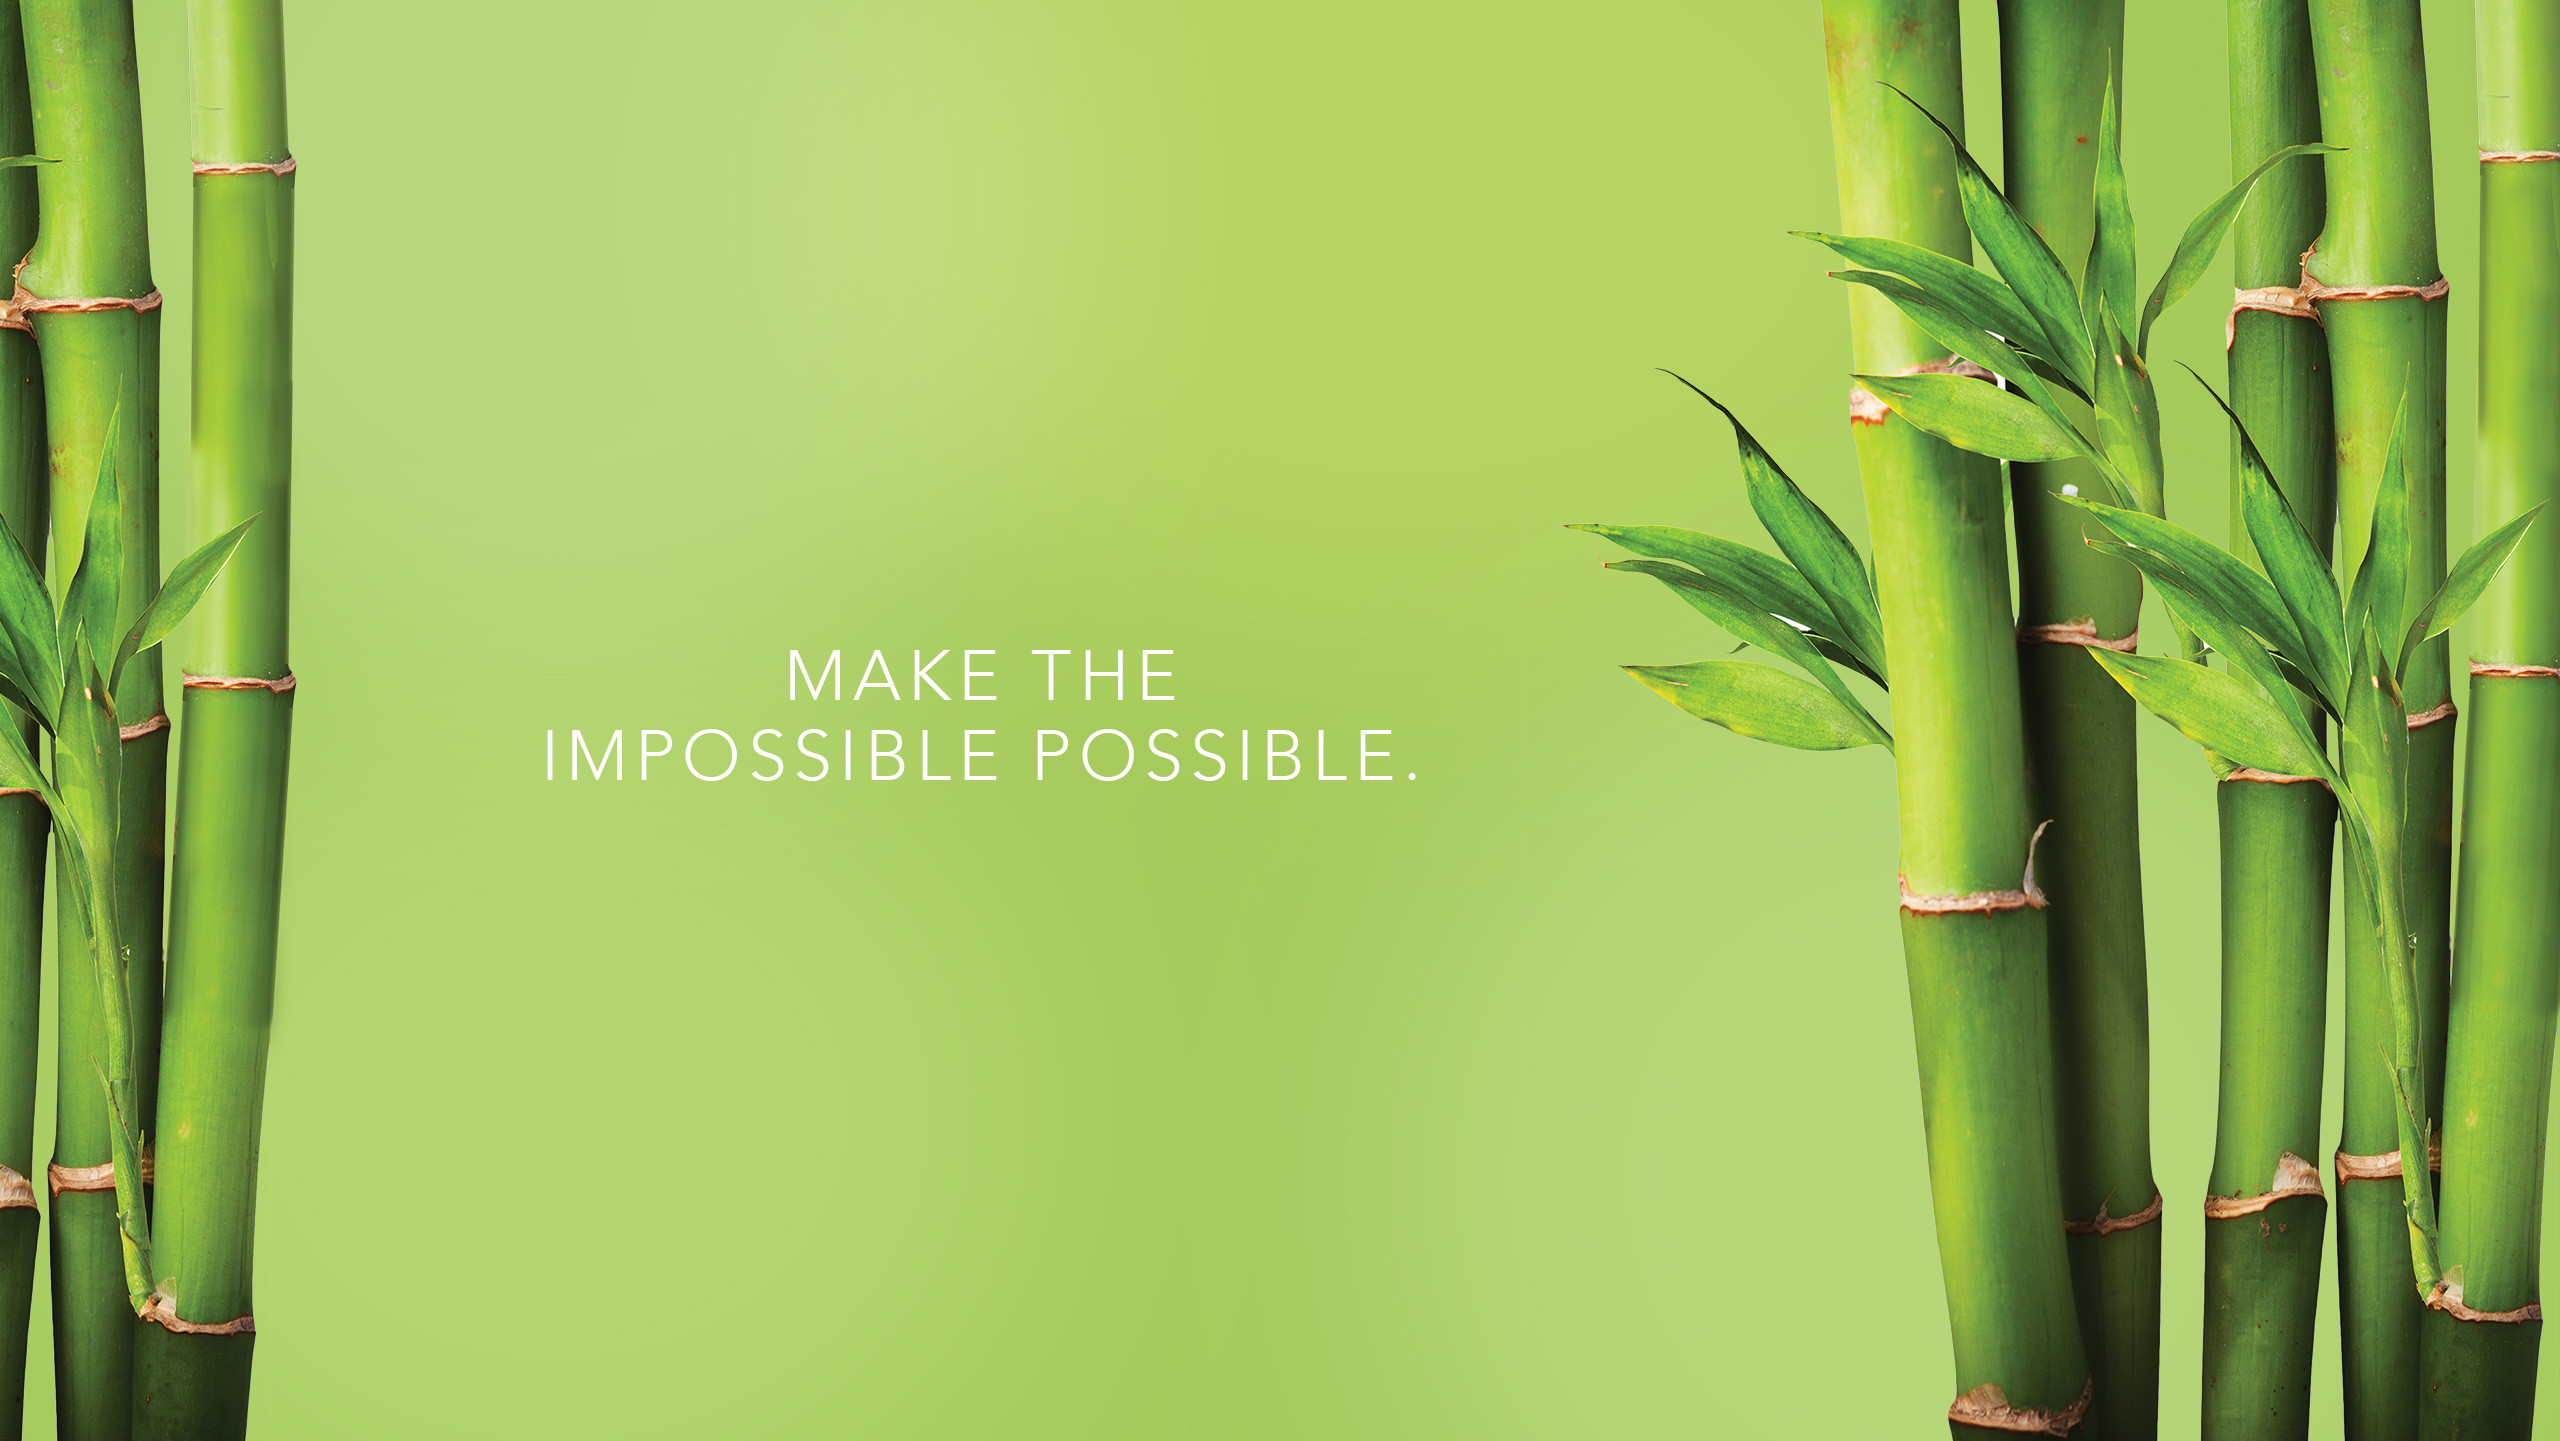 bamboo pictures wallpaper 67